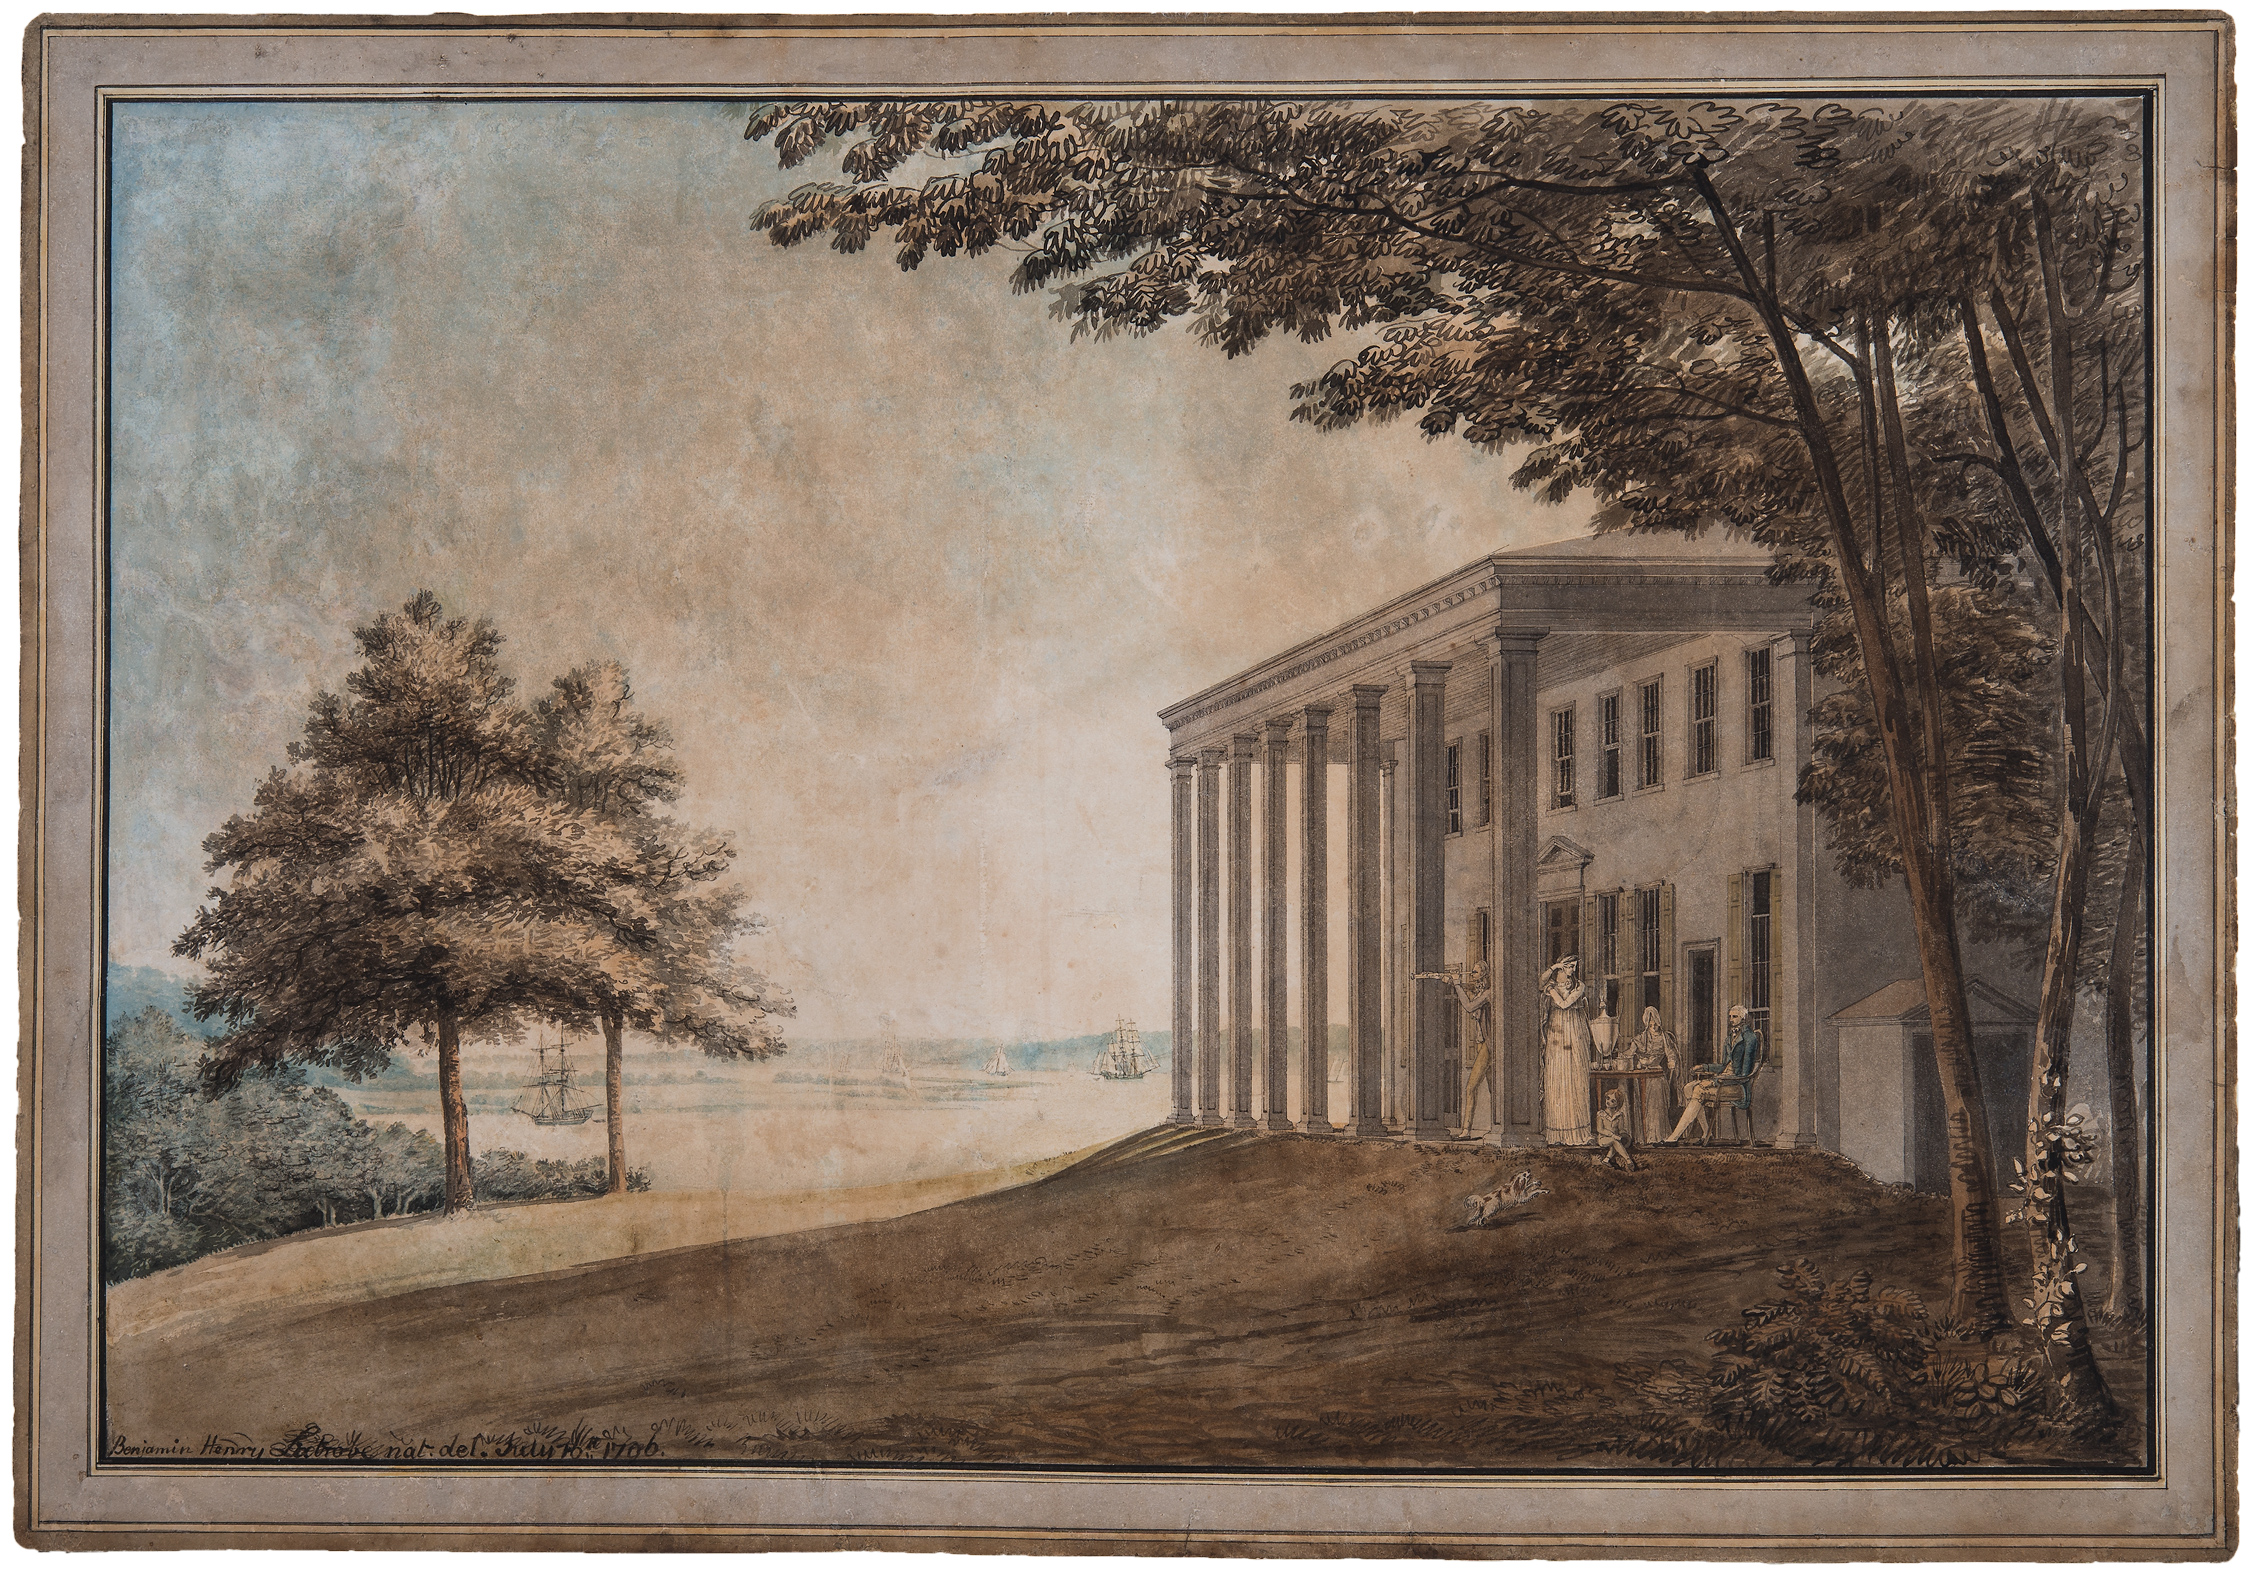 George and Martha Washington frequently entertained in elegant style on Mount Vernon's piazza, as depicted in this 1796 watercolor by architect Benjamin Henry Latrobe.